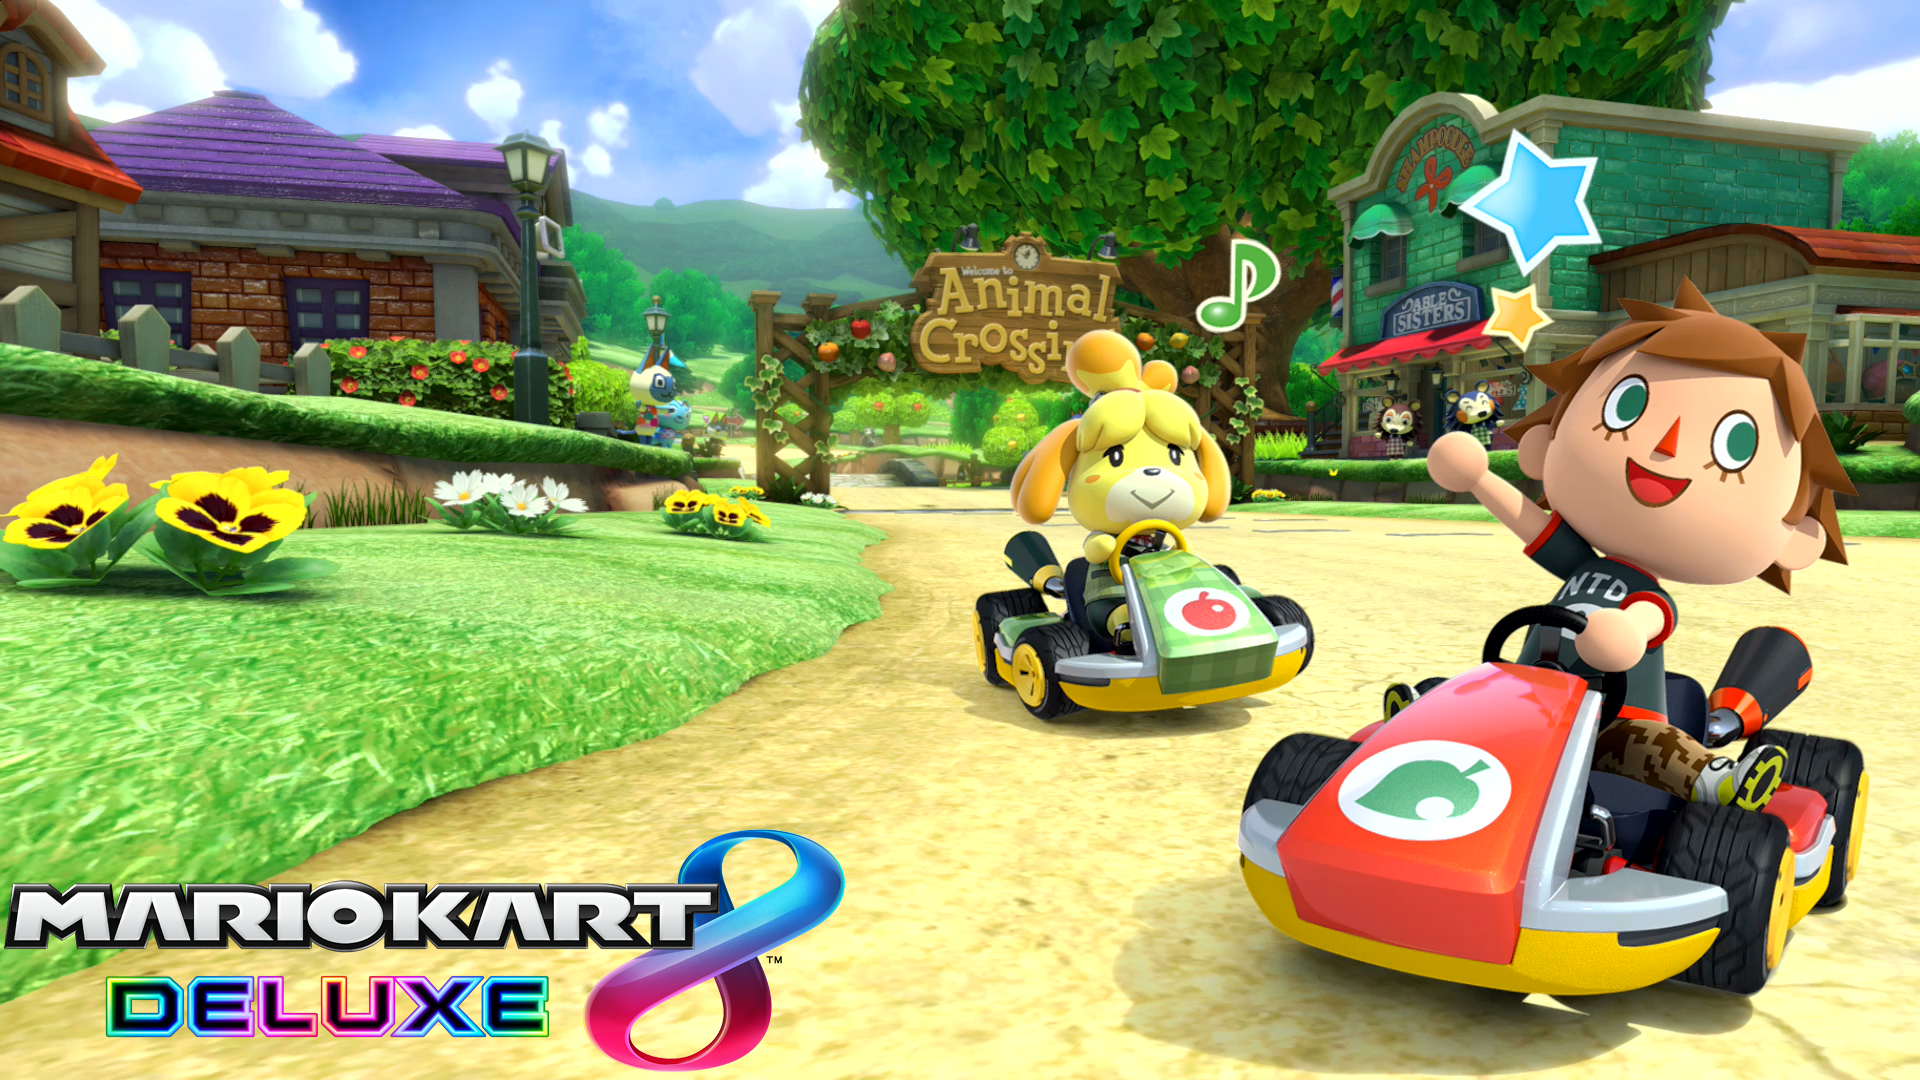 Mario Kart 8 Background: Mario Kart 8 Deluxe Animal Crossing Wallpaper HD Wallpaper